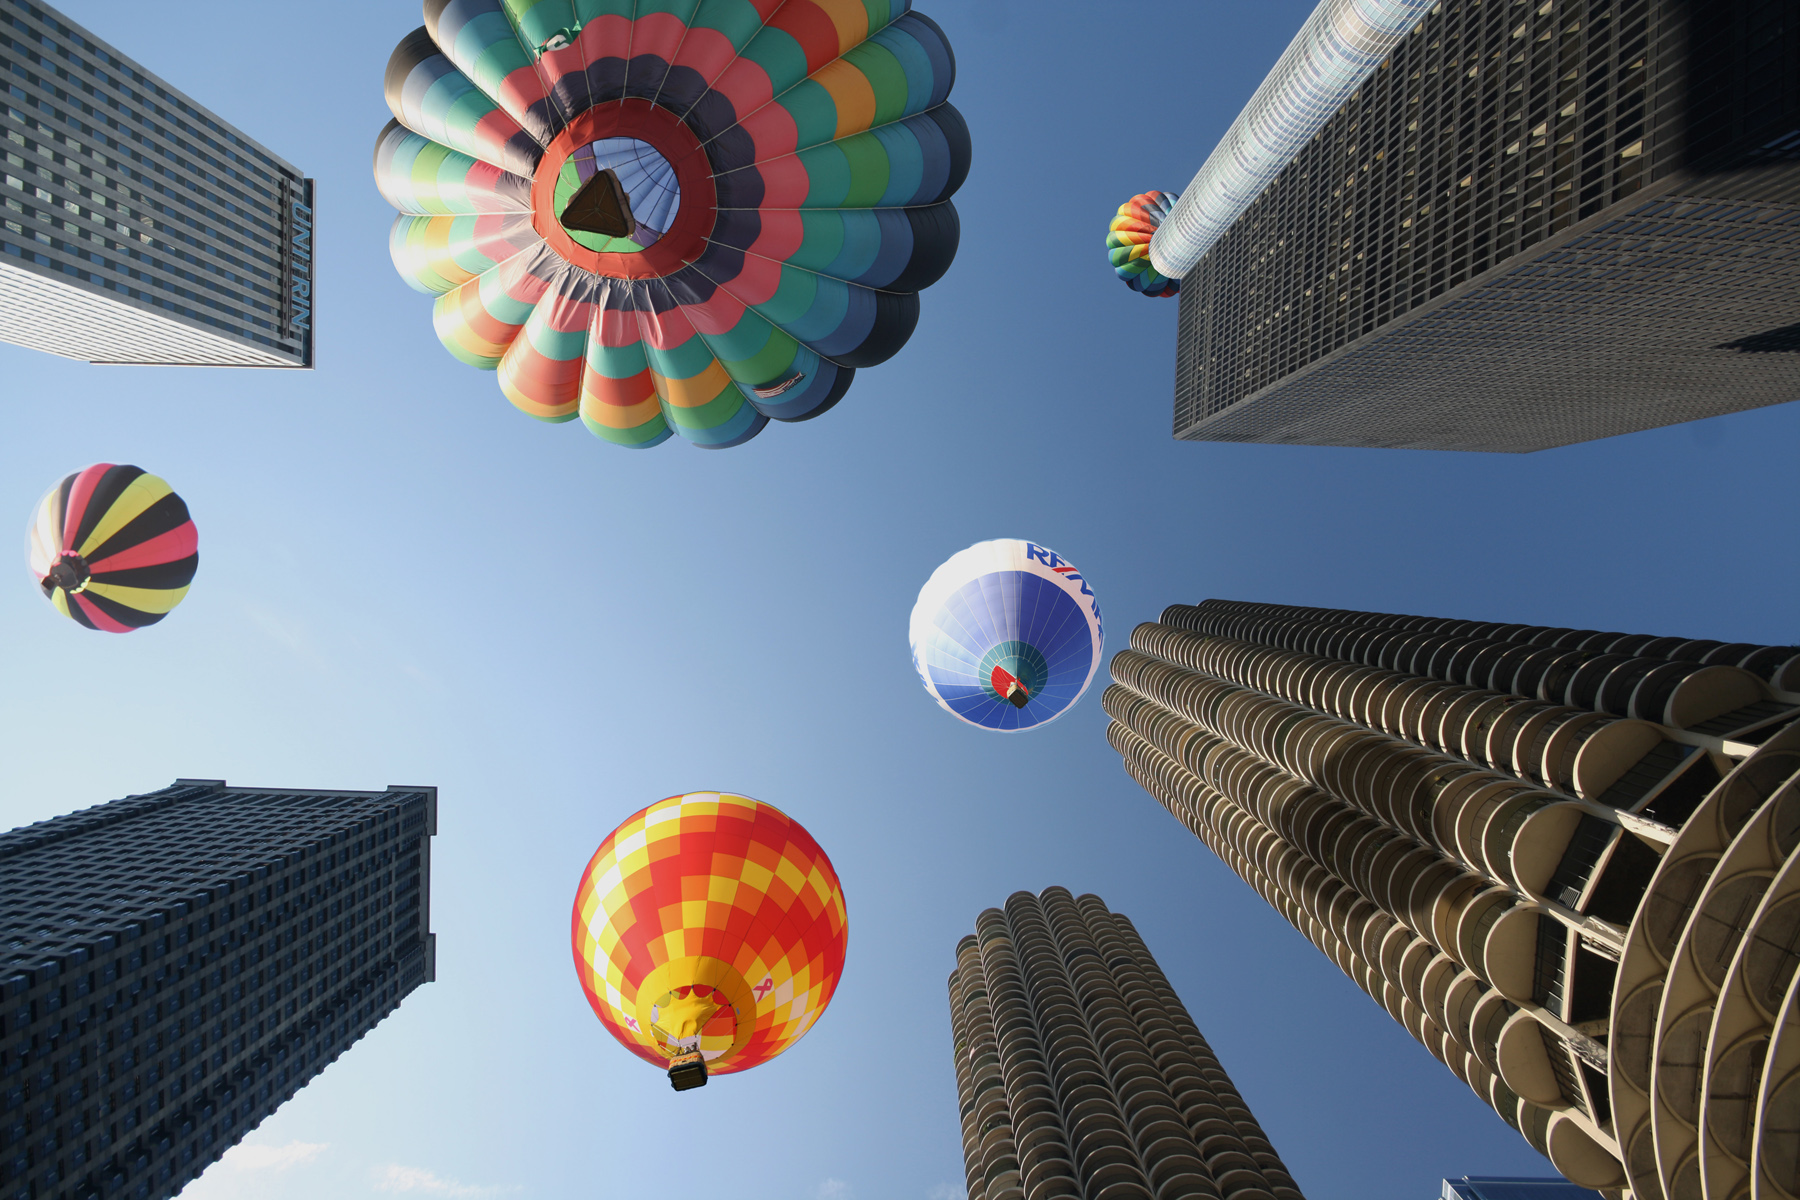 Chicago Balloon Fest